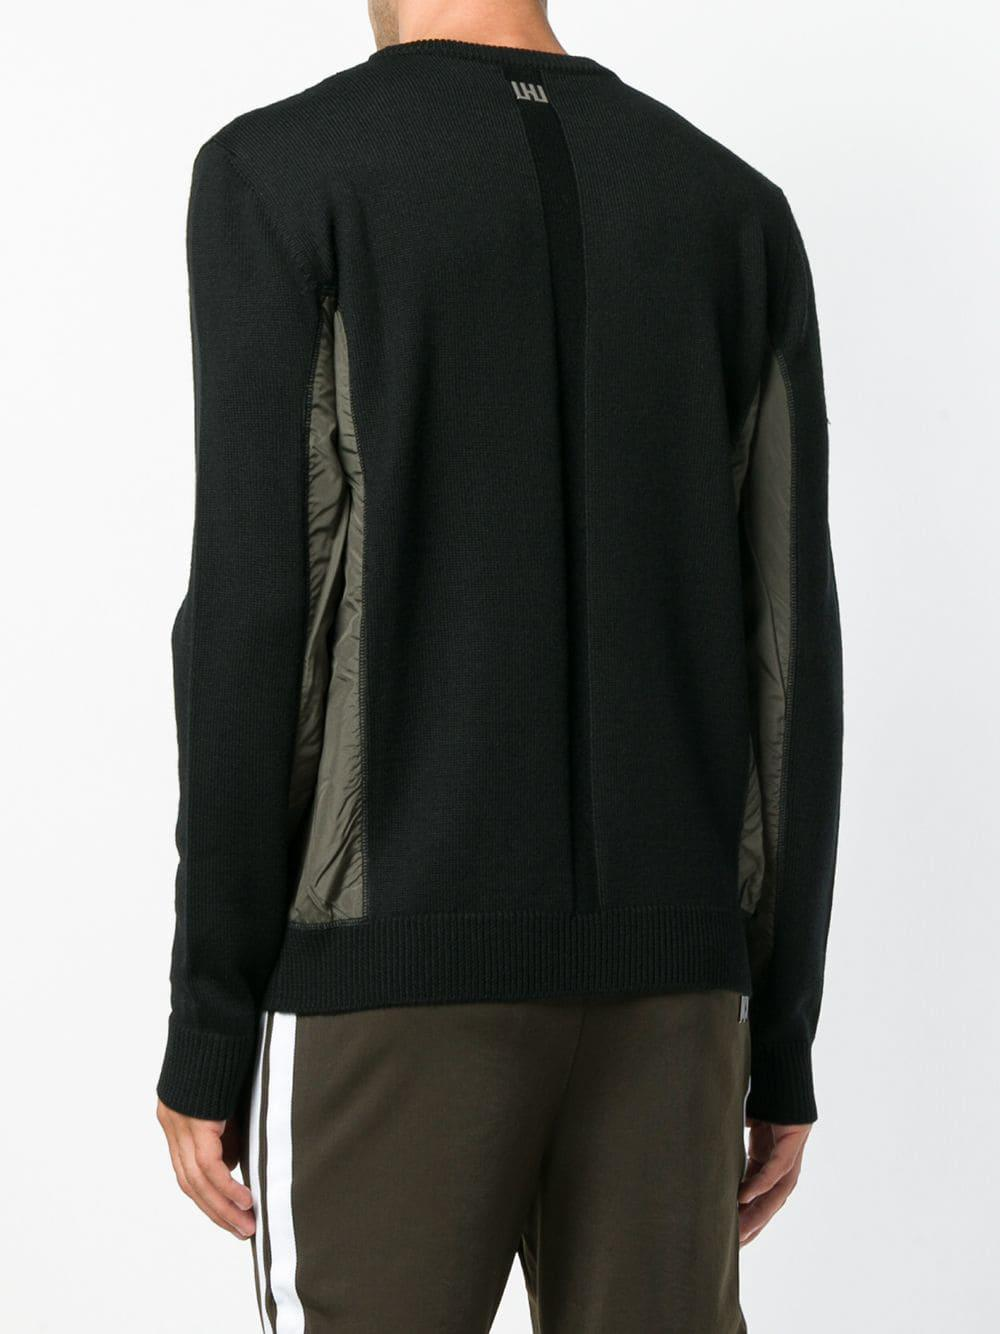 Hommes For Contrasting View Panel Men Black Sweater Lyst Les Fullscreen wXdqnSE7X